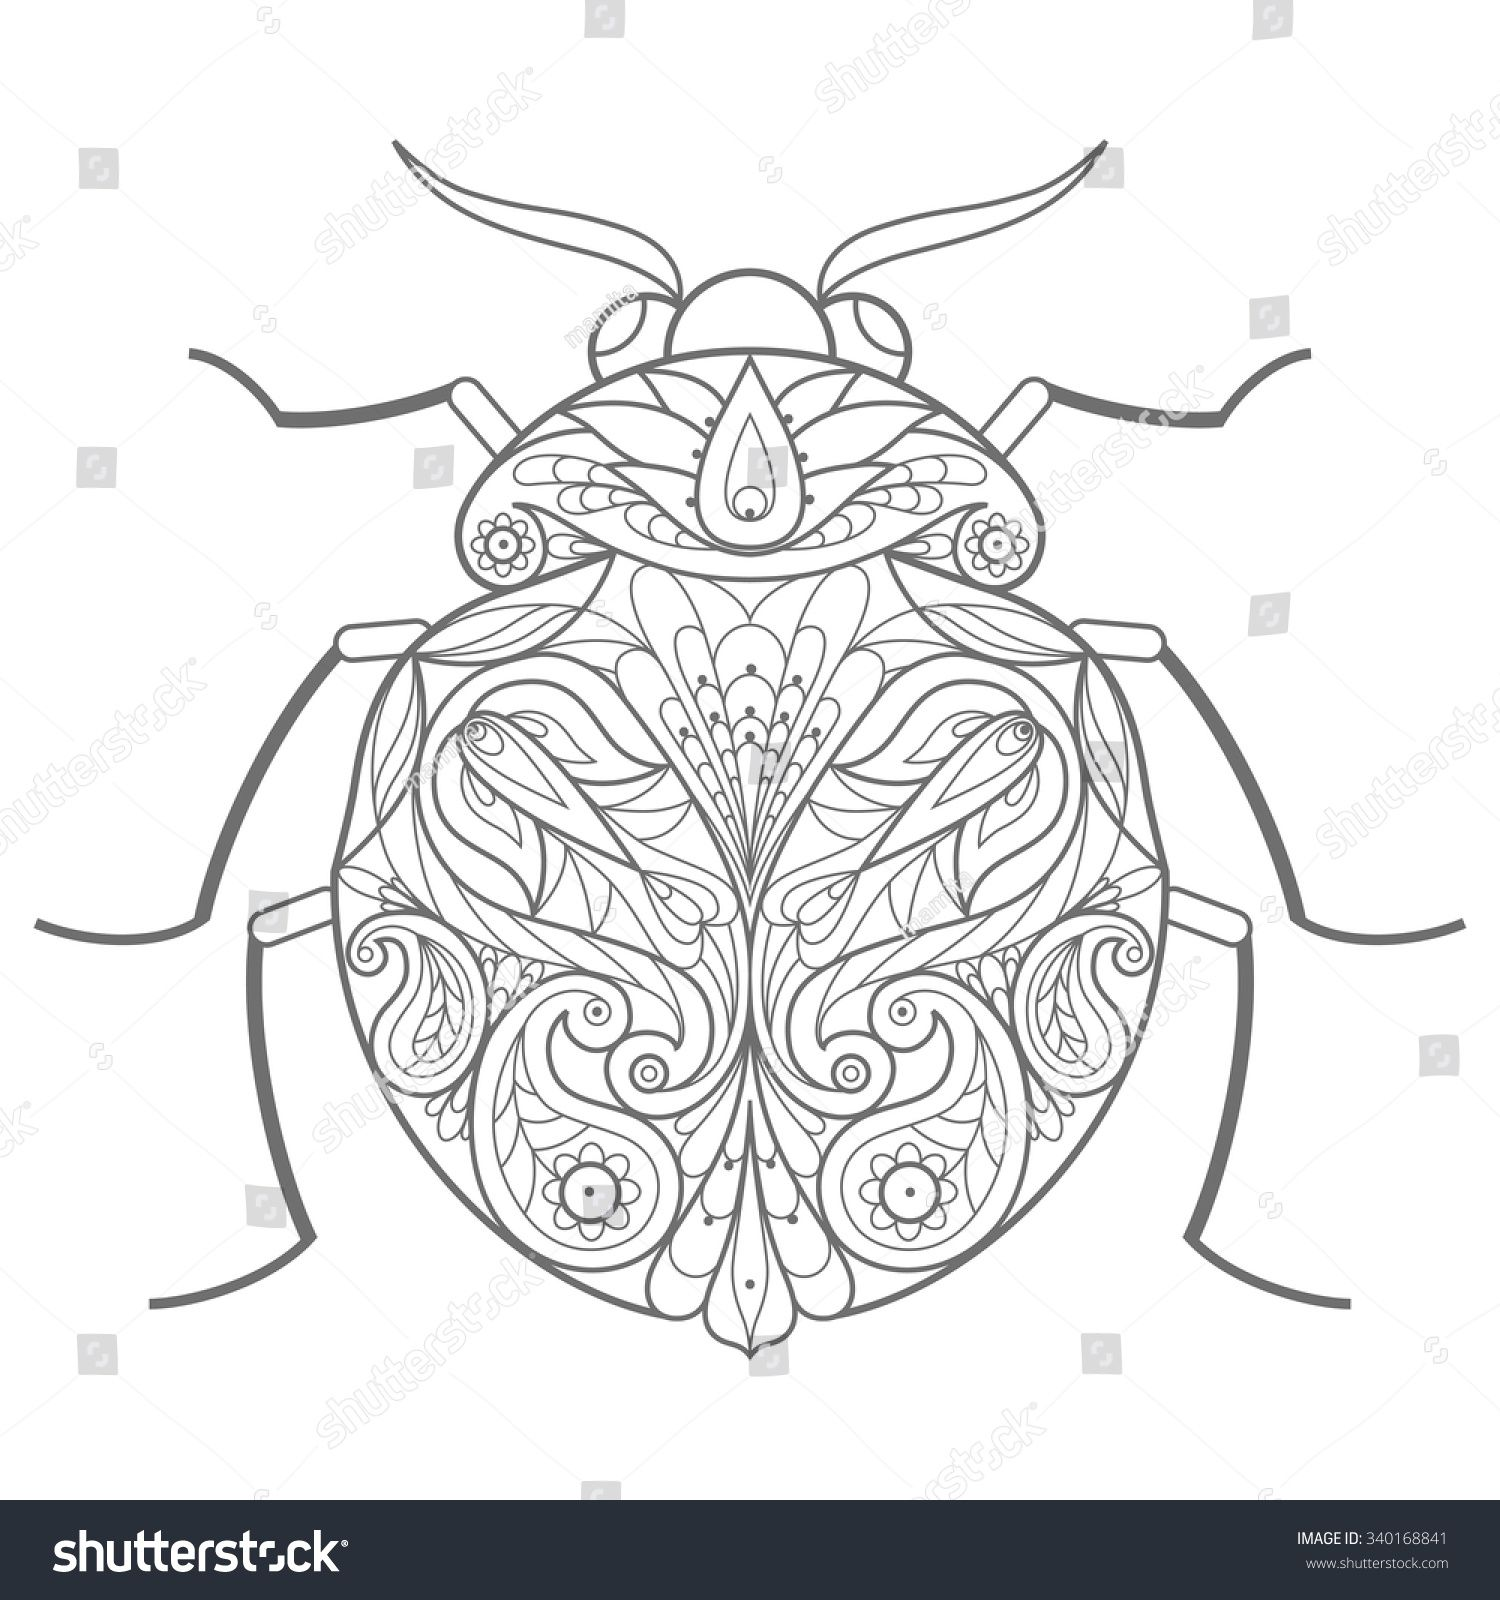 Template for coloring book. Vector decorative beetle.  Insect